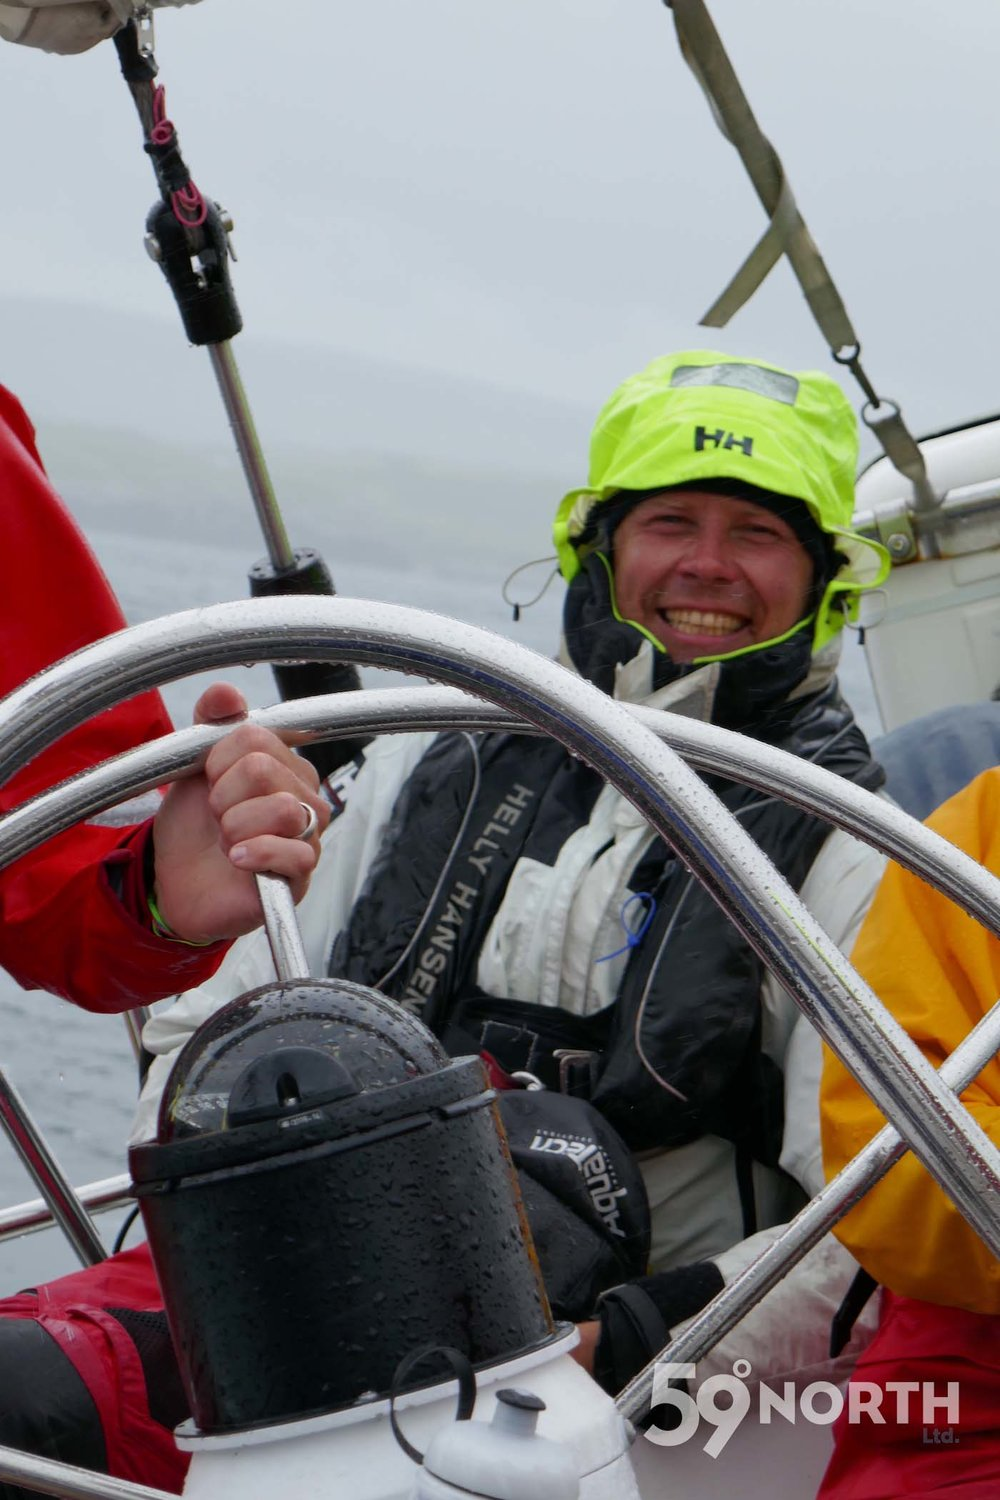 Sailing north from Isle of Skye to the outer Hebrides ! Leg 8, 2017: Sweden to Scotland 59-north.com